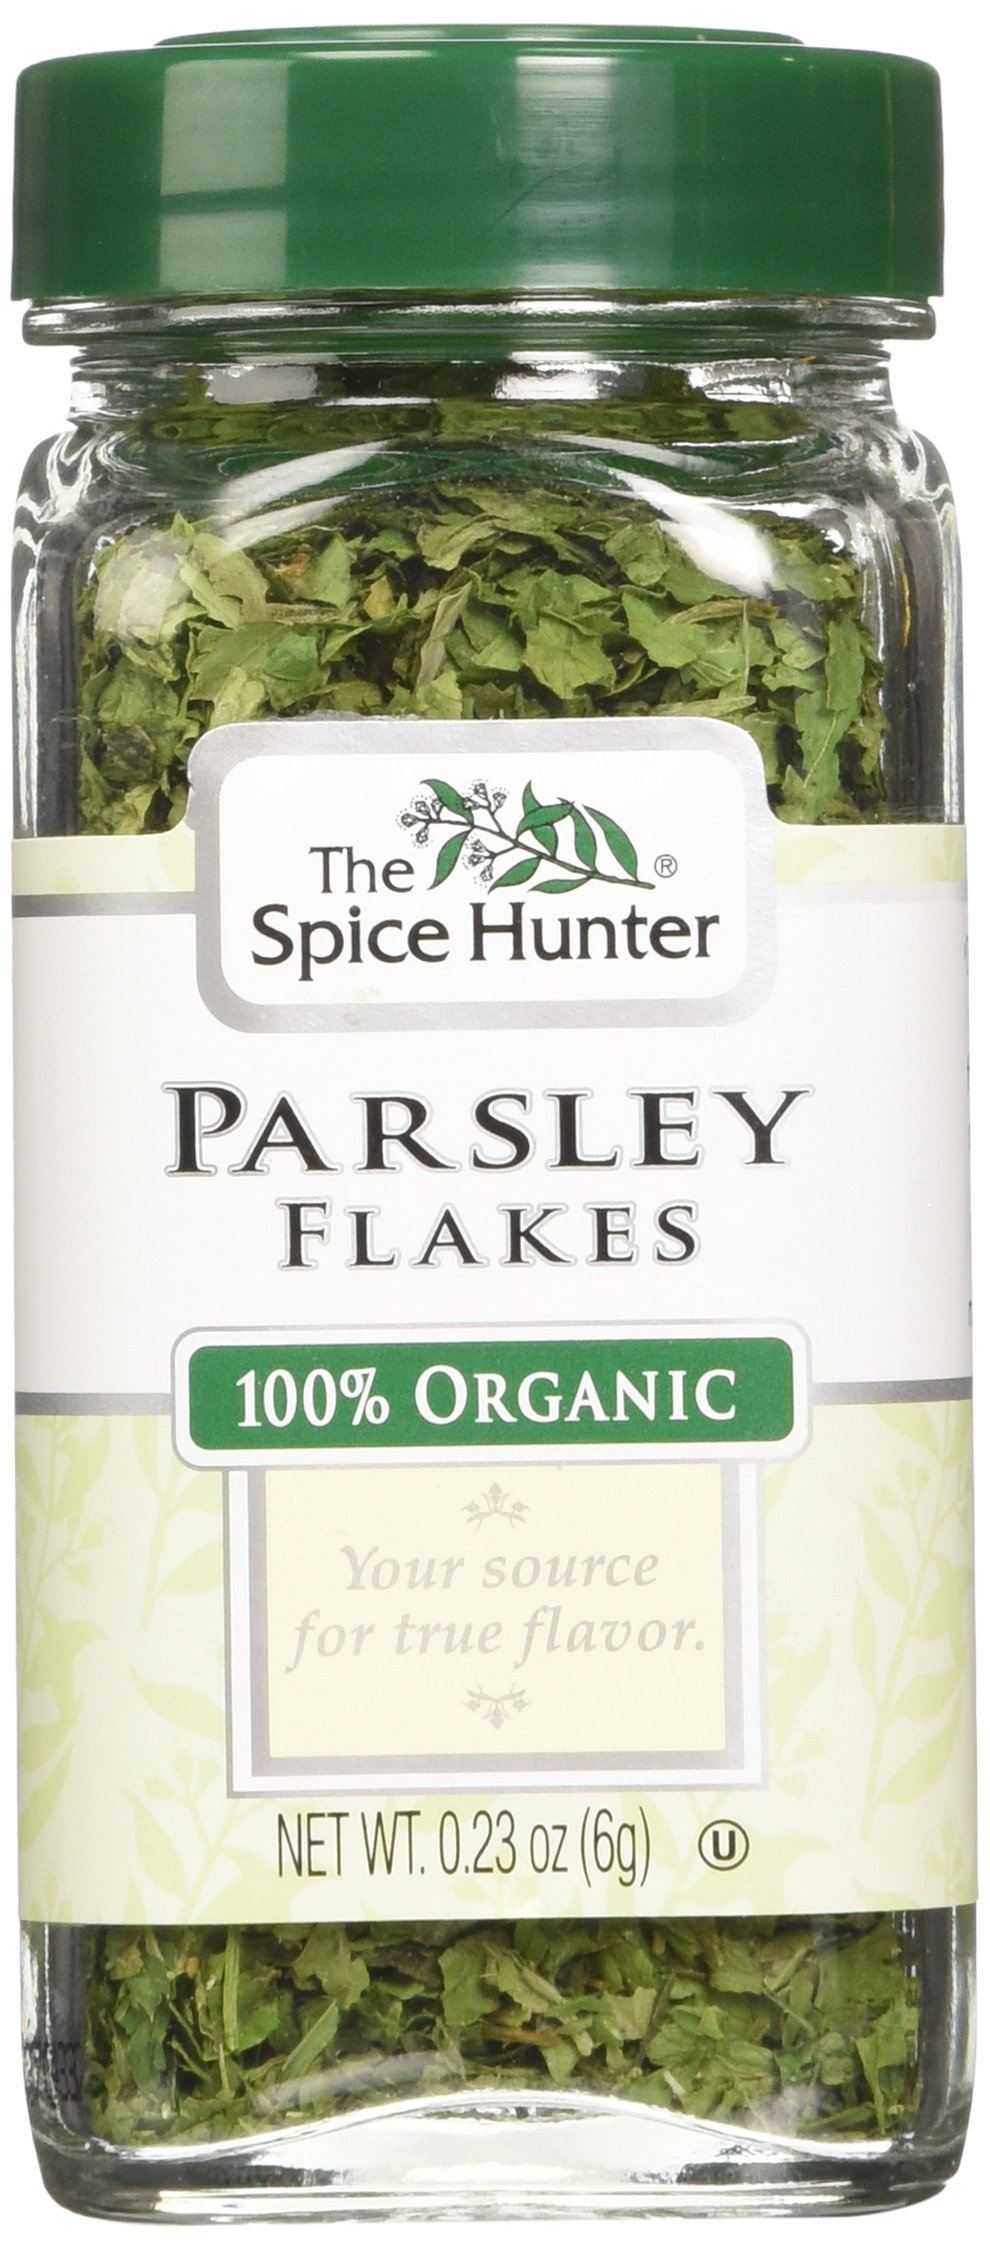 The Spice Hunter Parsley Flakes, Organic, 0.23-Ounce Jars (Pack of 6)